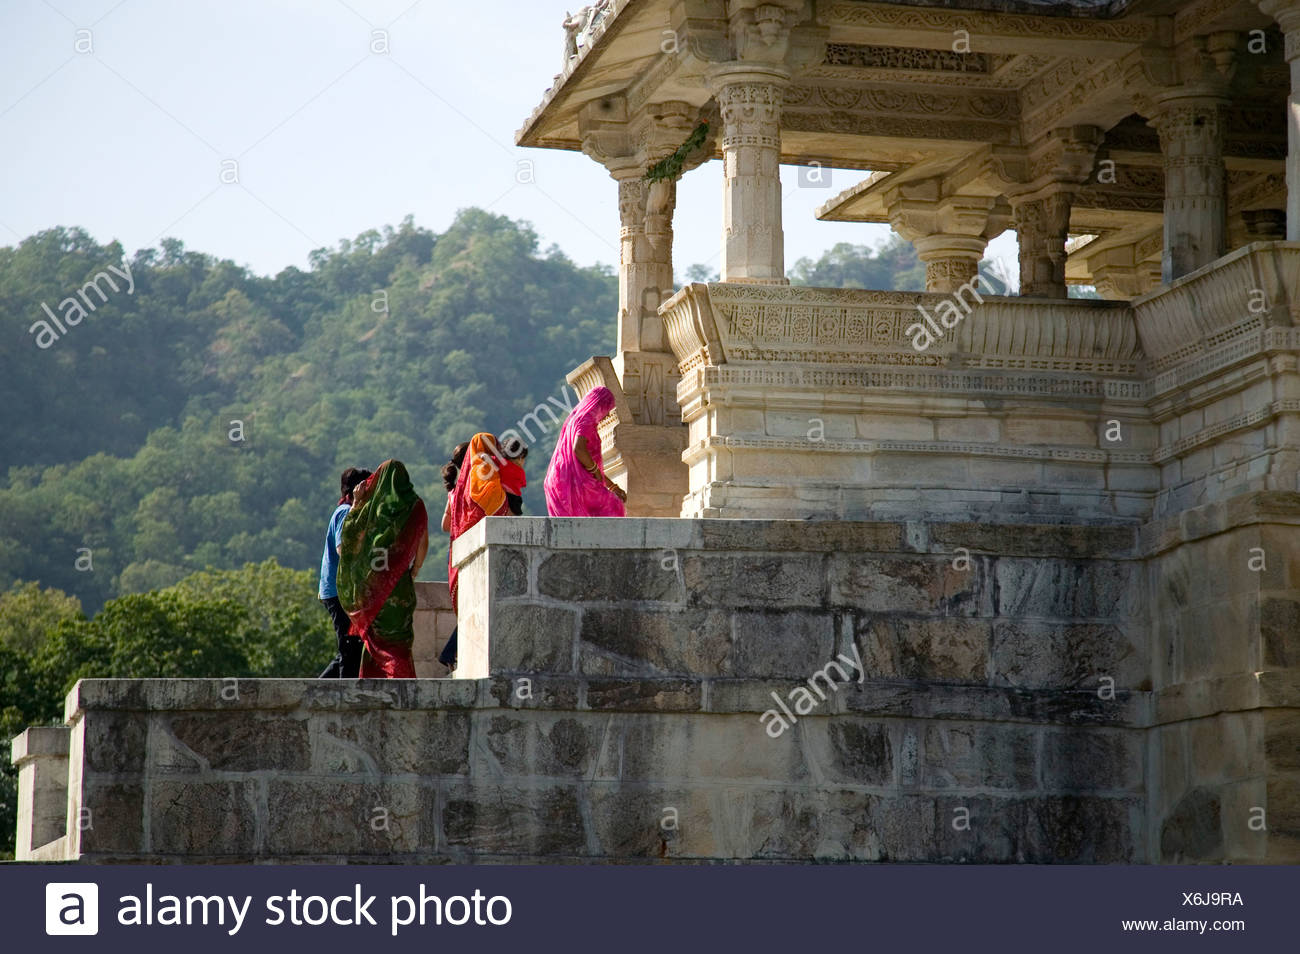 4387f2cbf2 Indian family in traditional dress entering Ranakpur temple in Rajasthan.